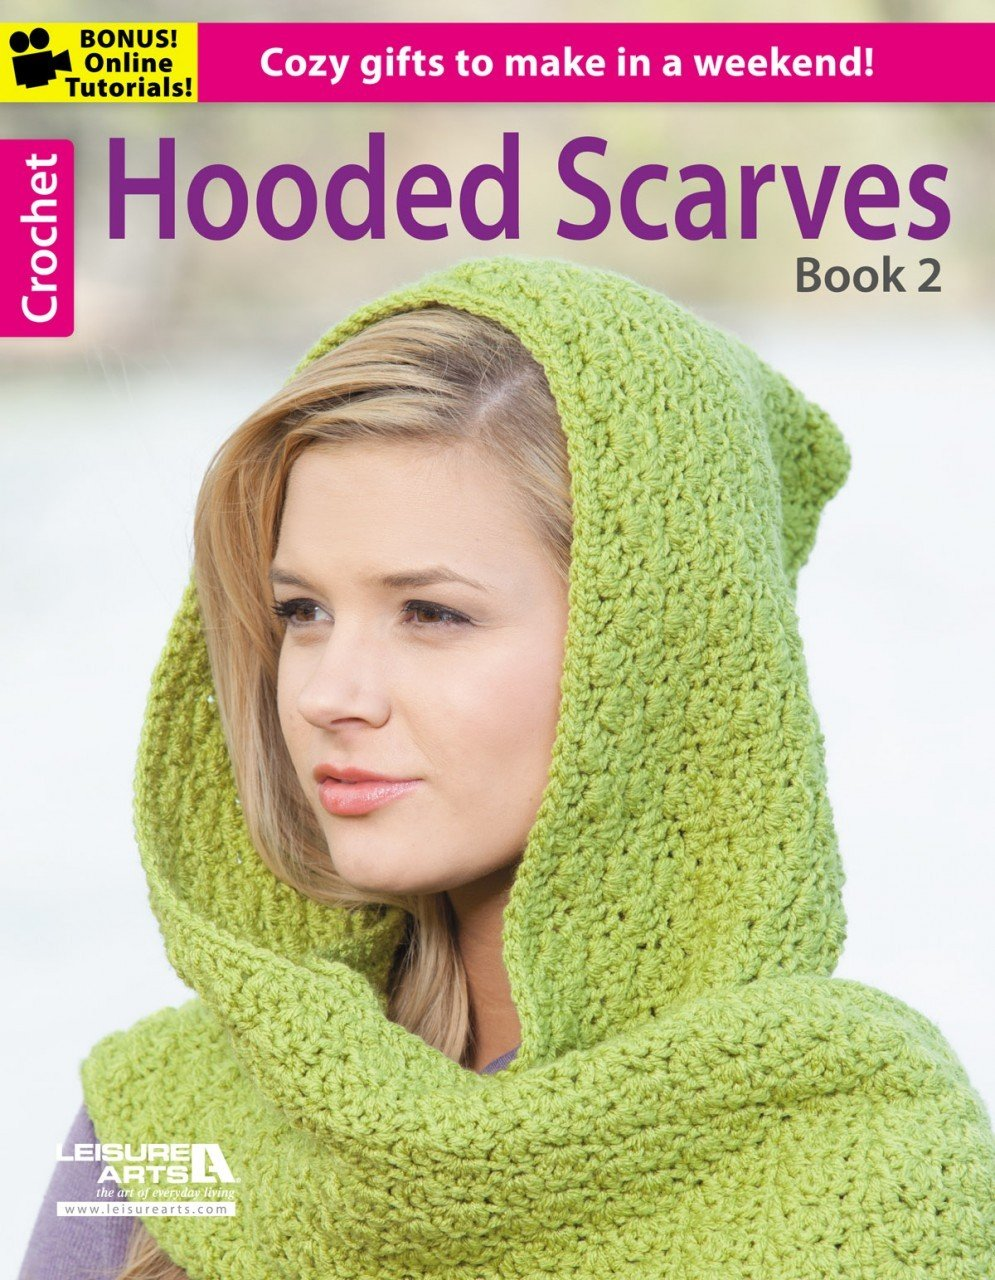 Hooded Scarves to Crochet and Hooded Scarves, Book 2 | Review ...